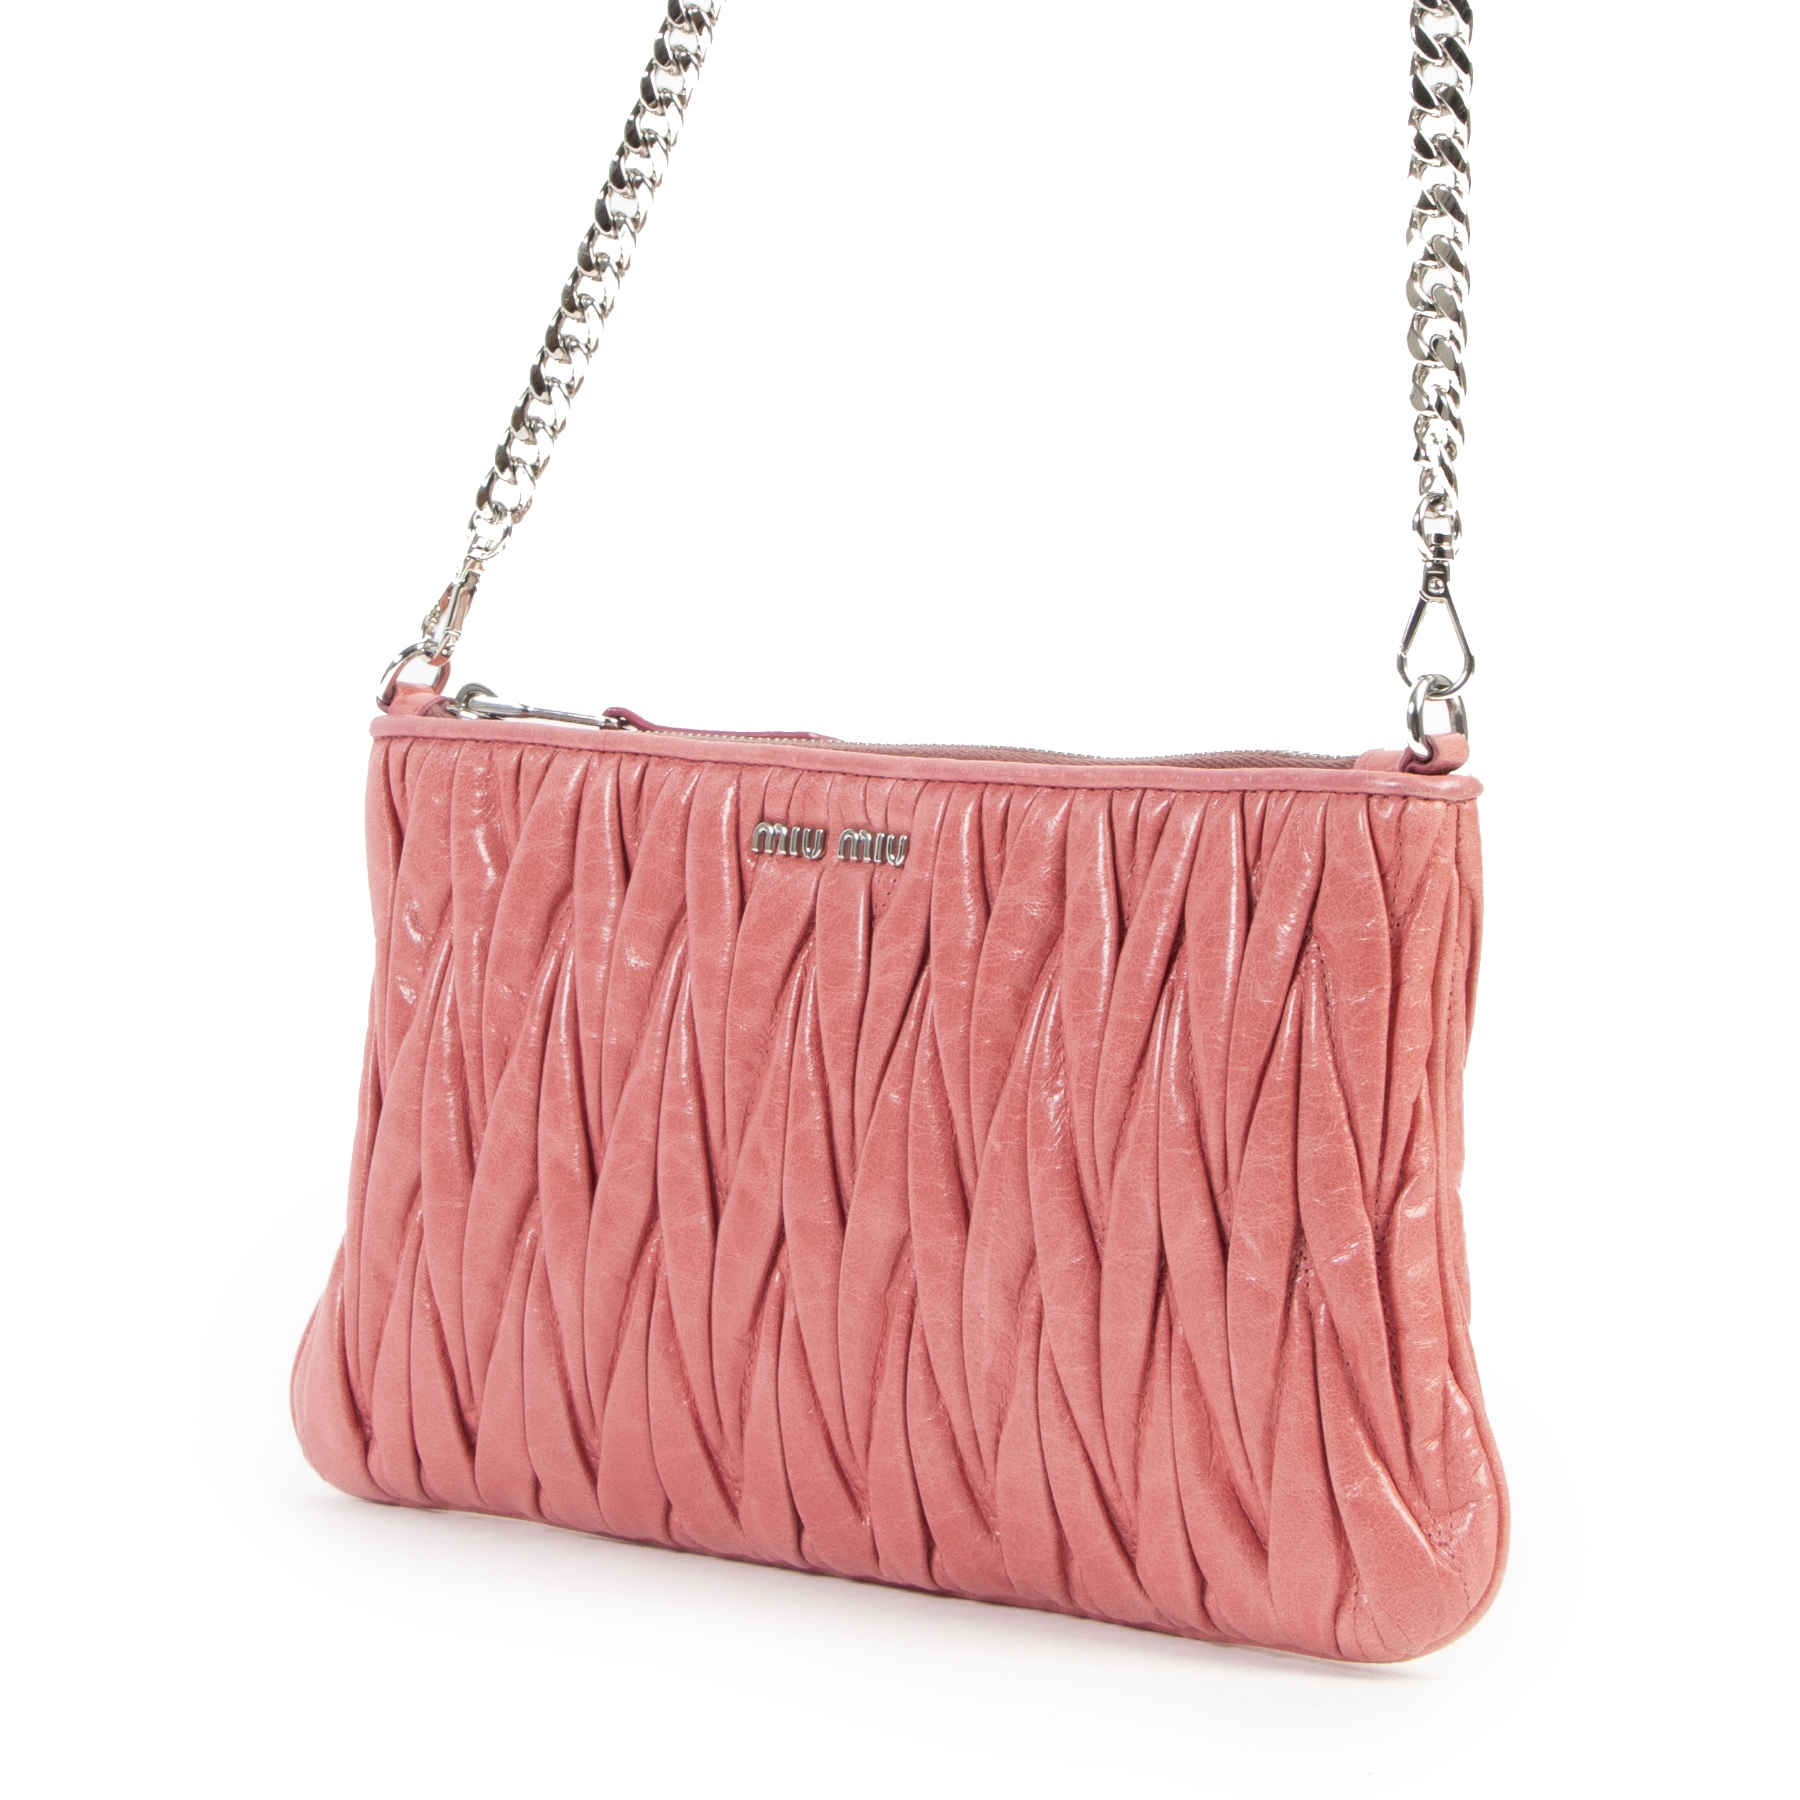 Miu Miu Pink Metalasse Crossbody Bag